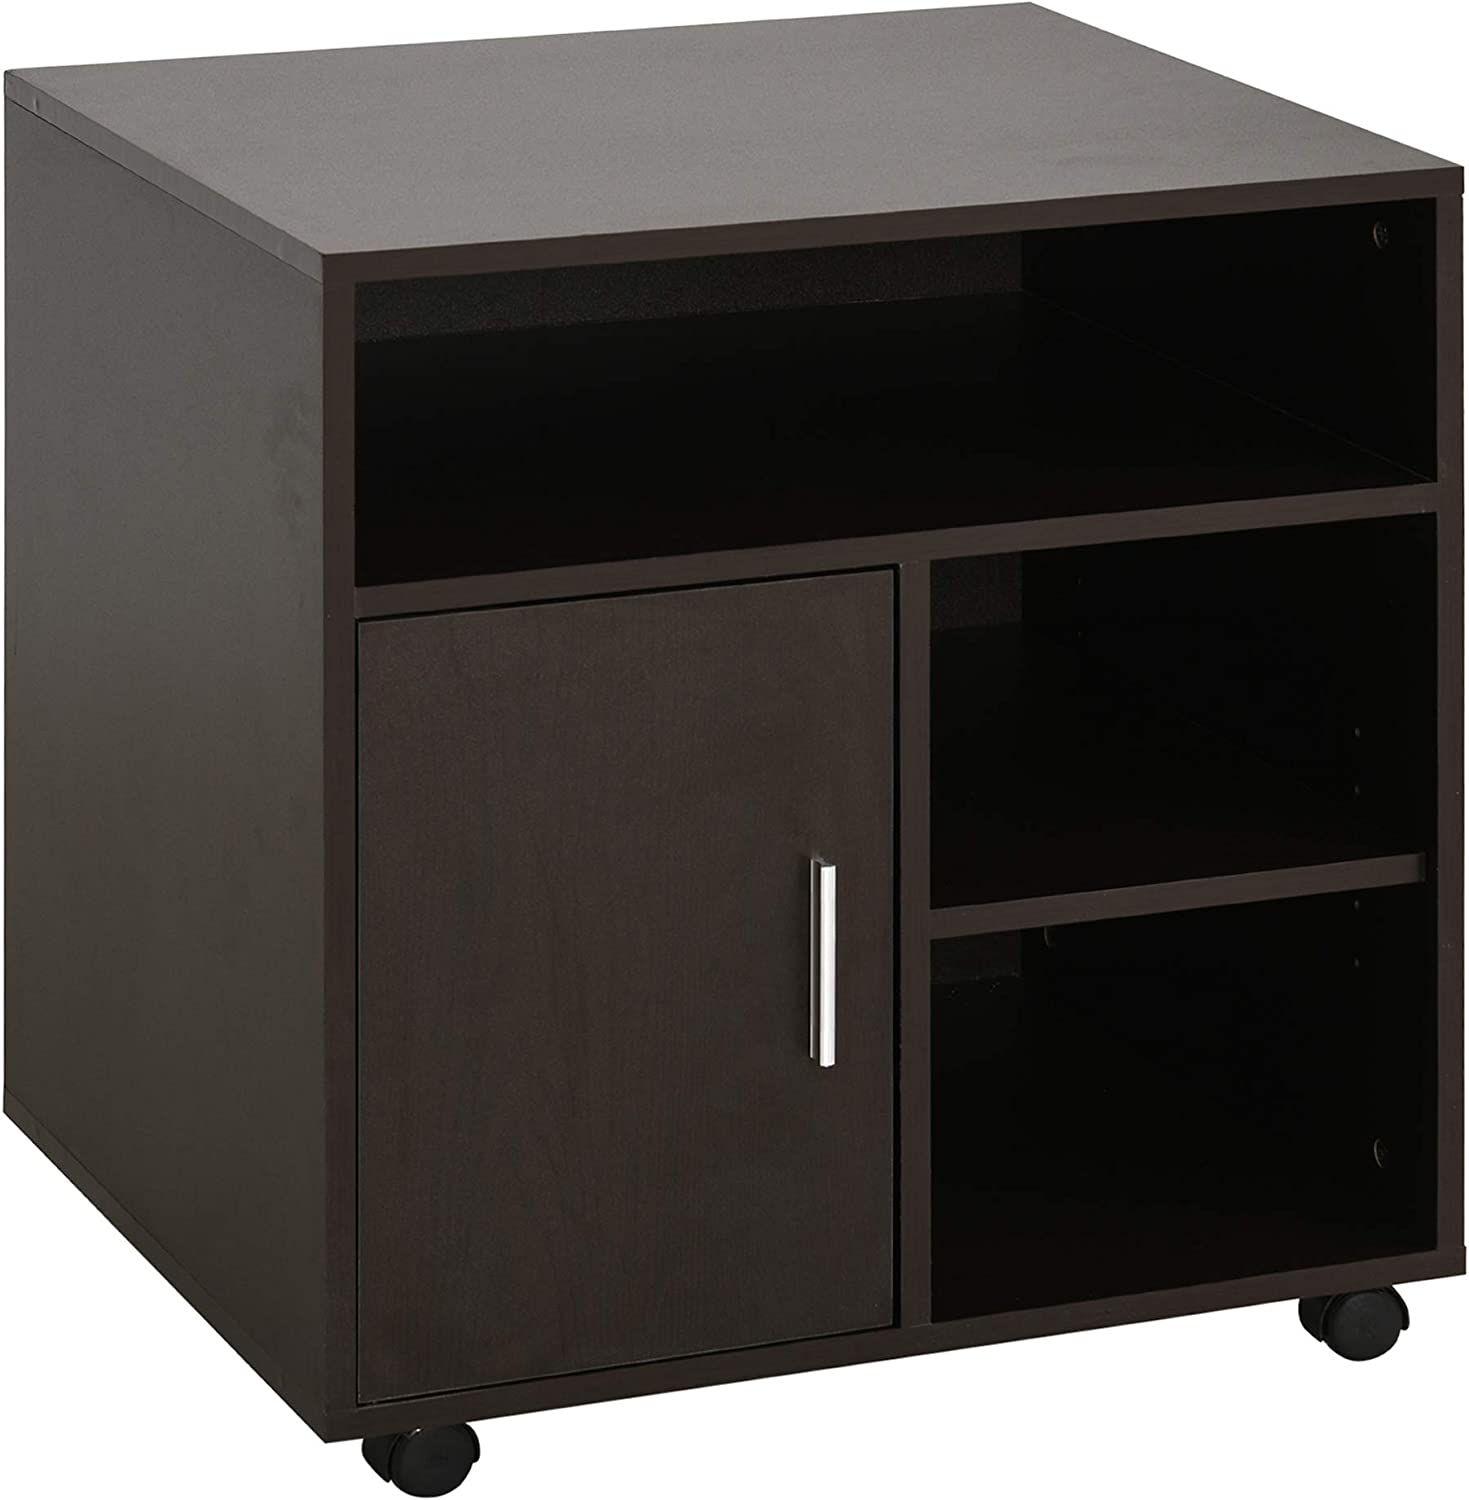 HOMCOM Printer Stand Multipurpose Moveable Filing Cabinet with Ample Inner Storage Space & 4 Easy-Rolling Wheels, Coffee